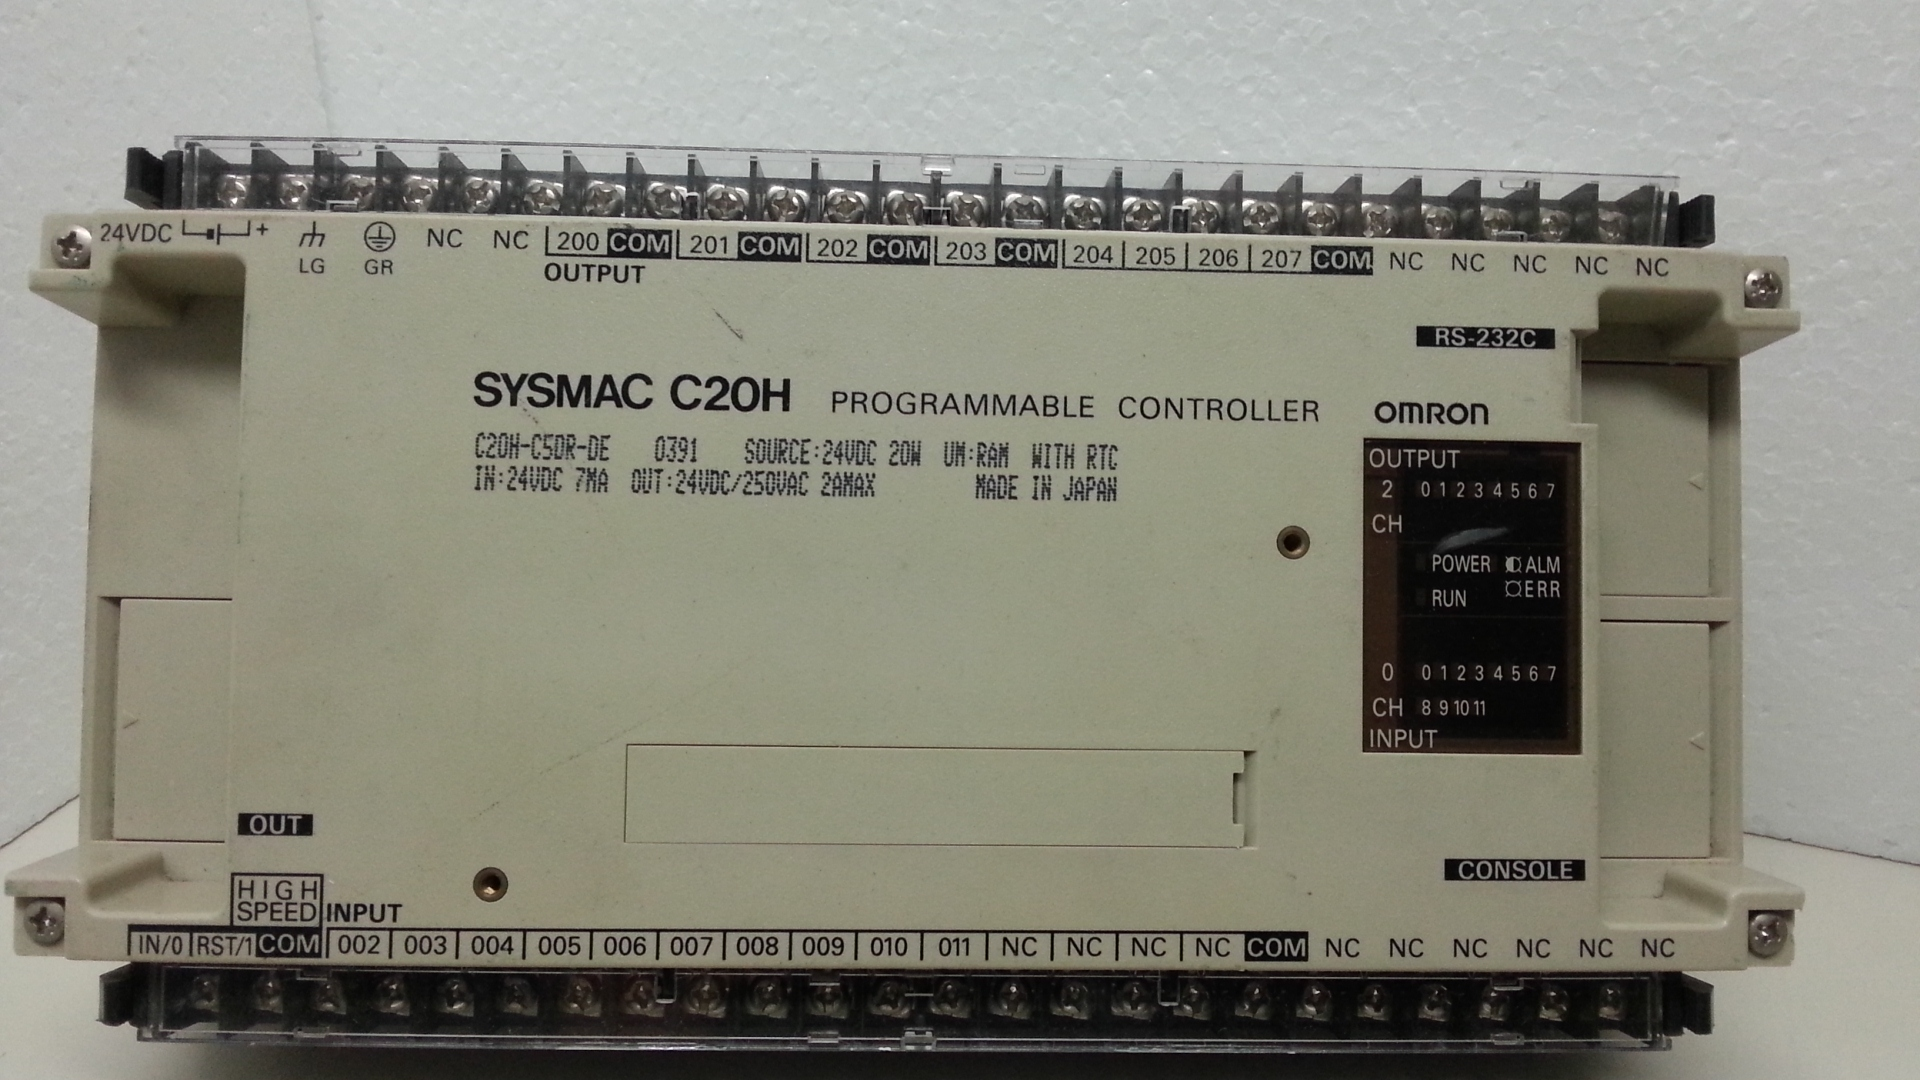 C20H-C50DR Omron sysmac used and tested.